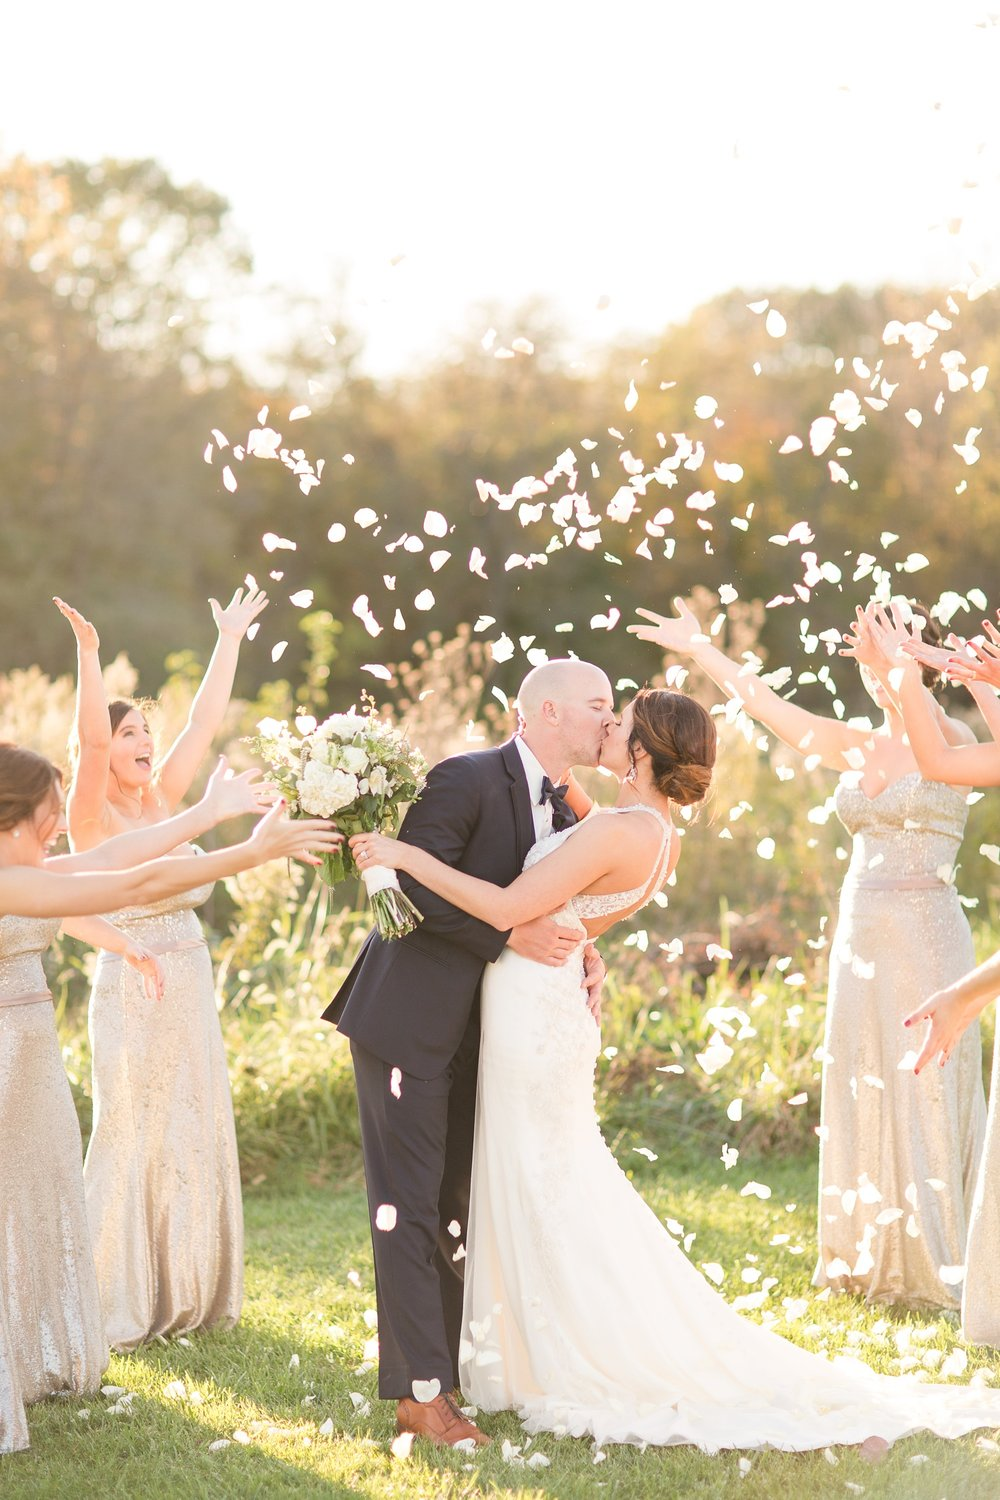 Bride and Groom in beautiful light with petals being thrown